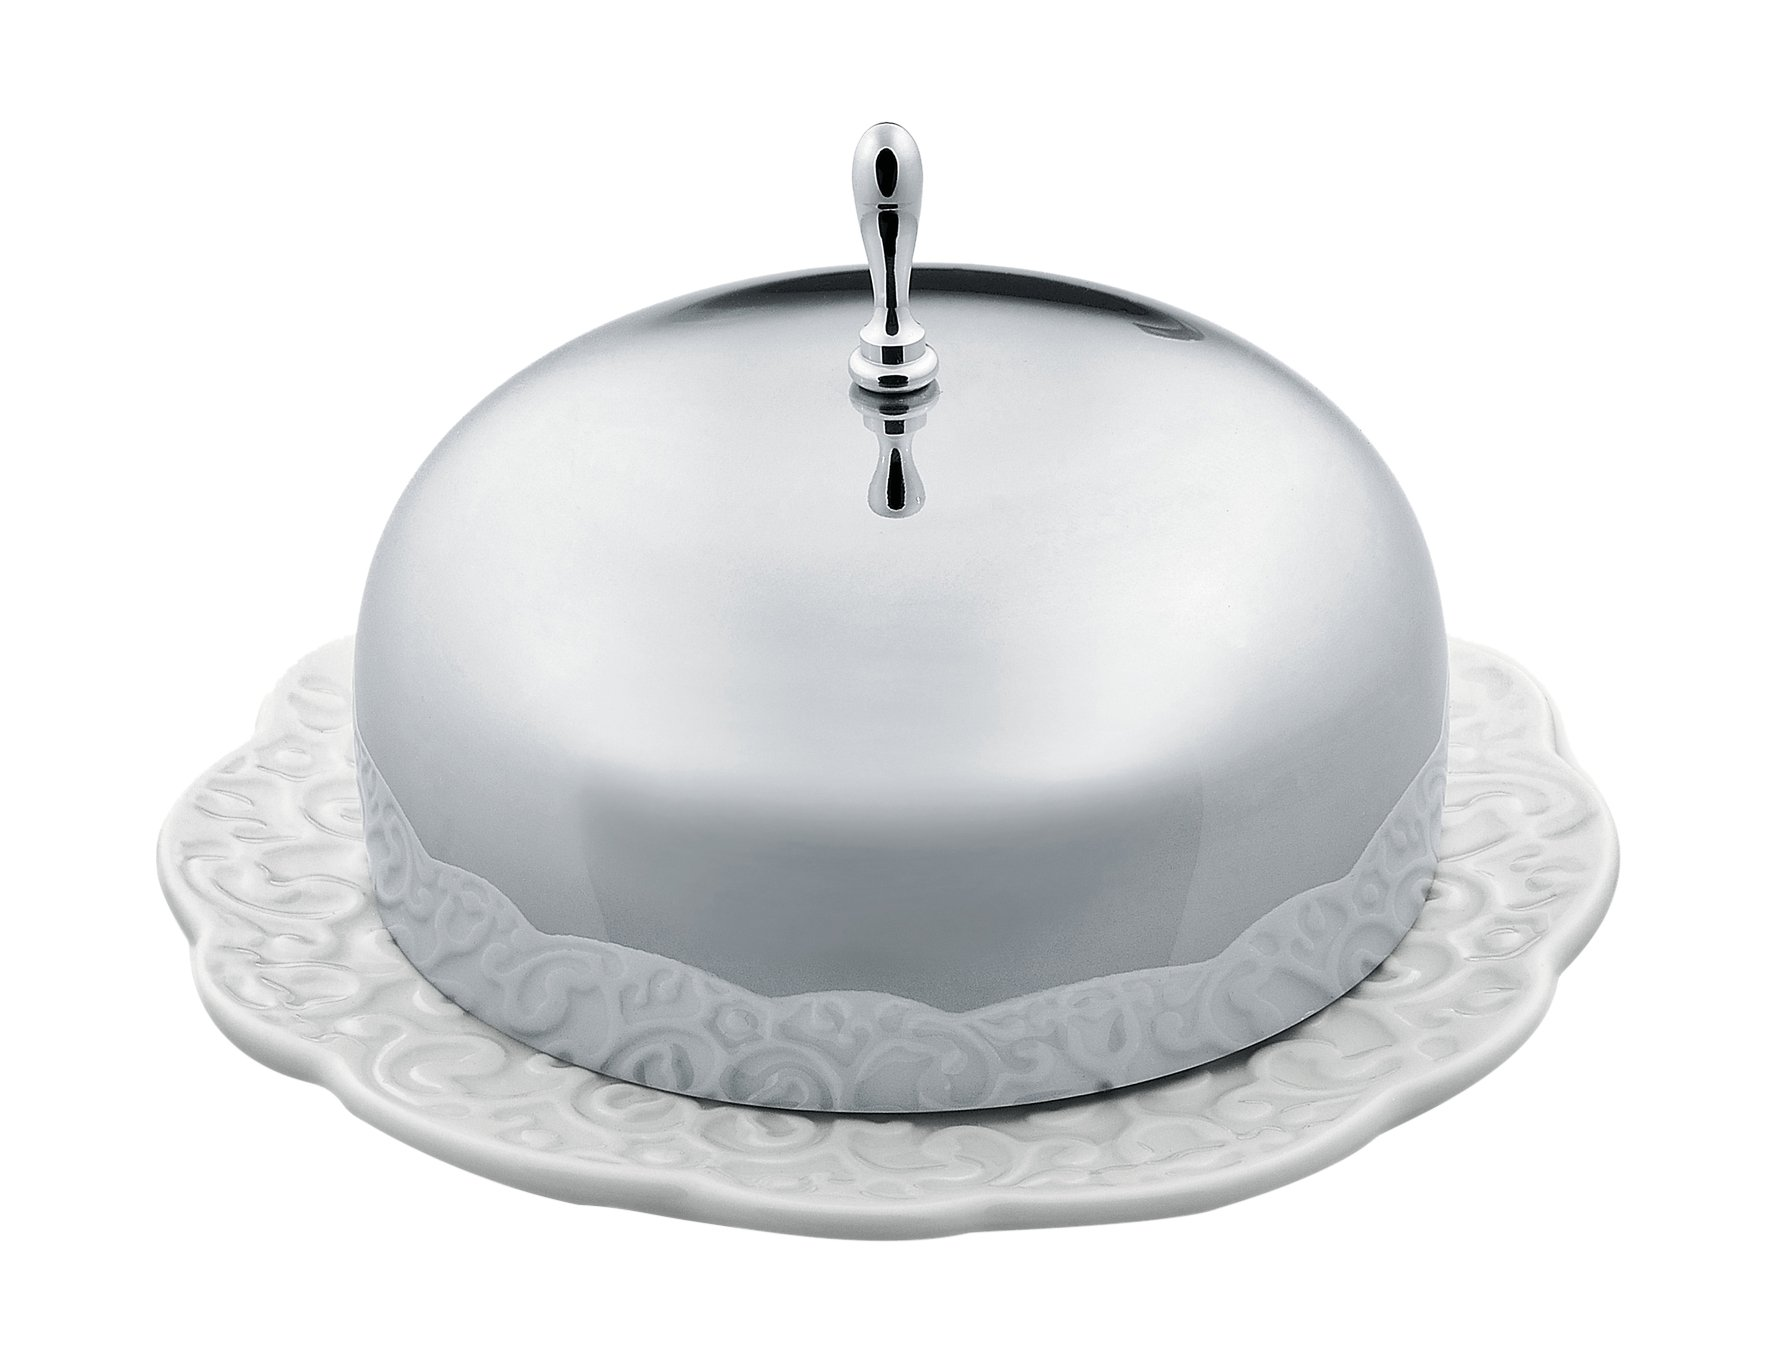 Alessi''Dressed'' Butter Dish in Porcelain With Lid in 18/10 Stainless Steel Mirror Polished, White